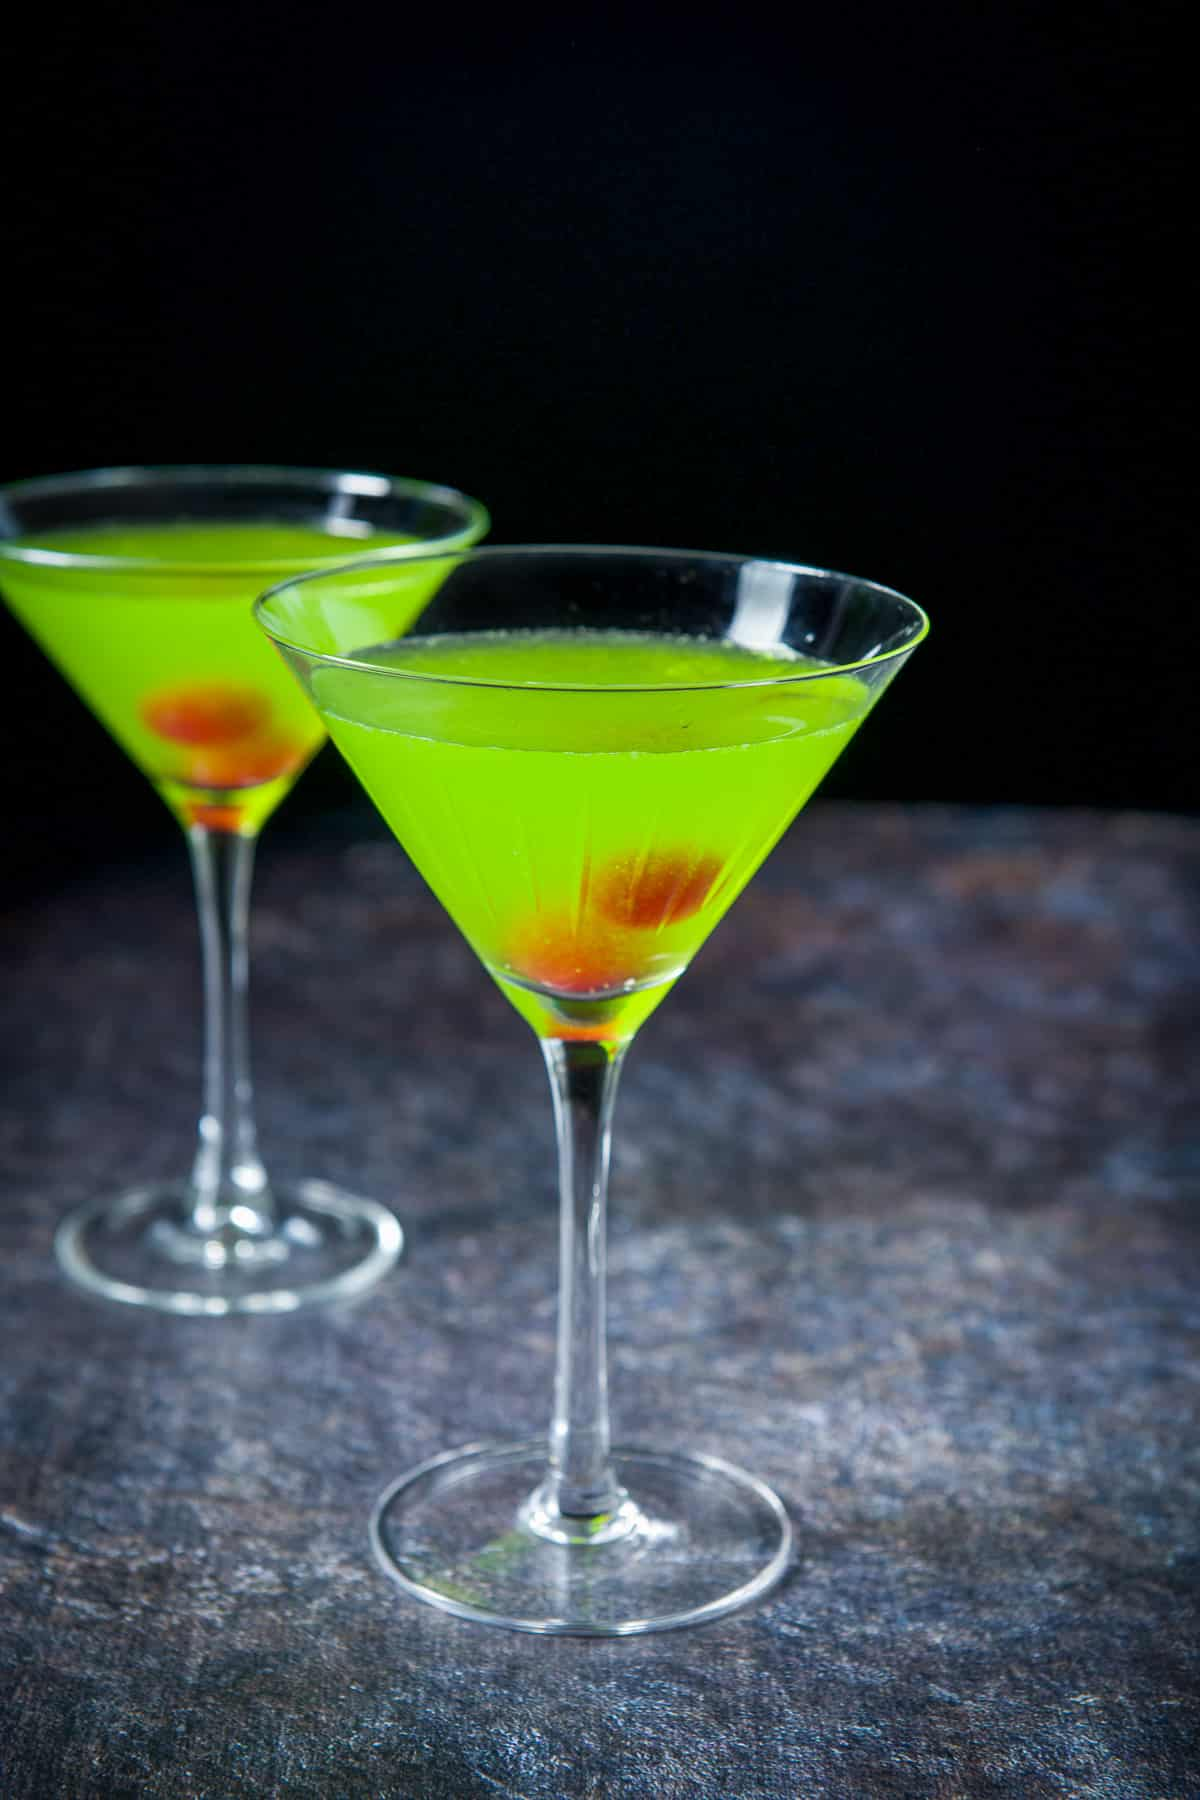 Two martini glasses filled with the green drink with cherries in the glasses as garnish